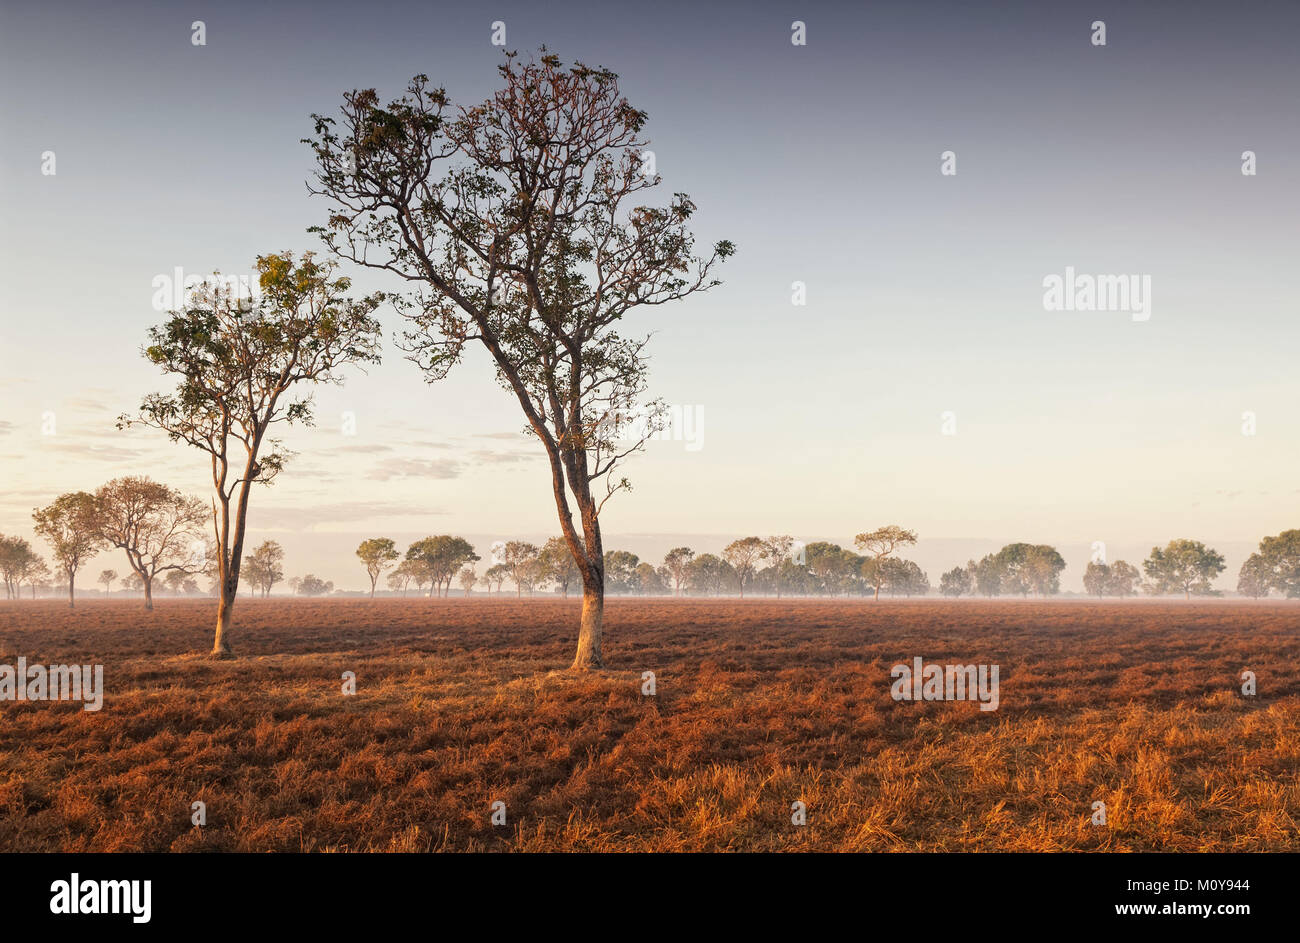 Dawn mist amongst trees in the Australian Outback (Darwin, Northern Territory) - Stock Image